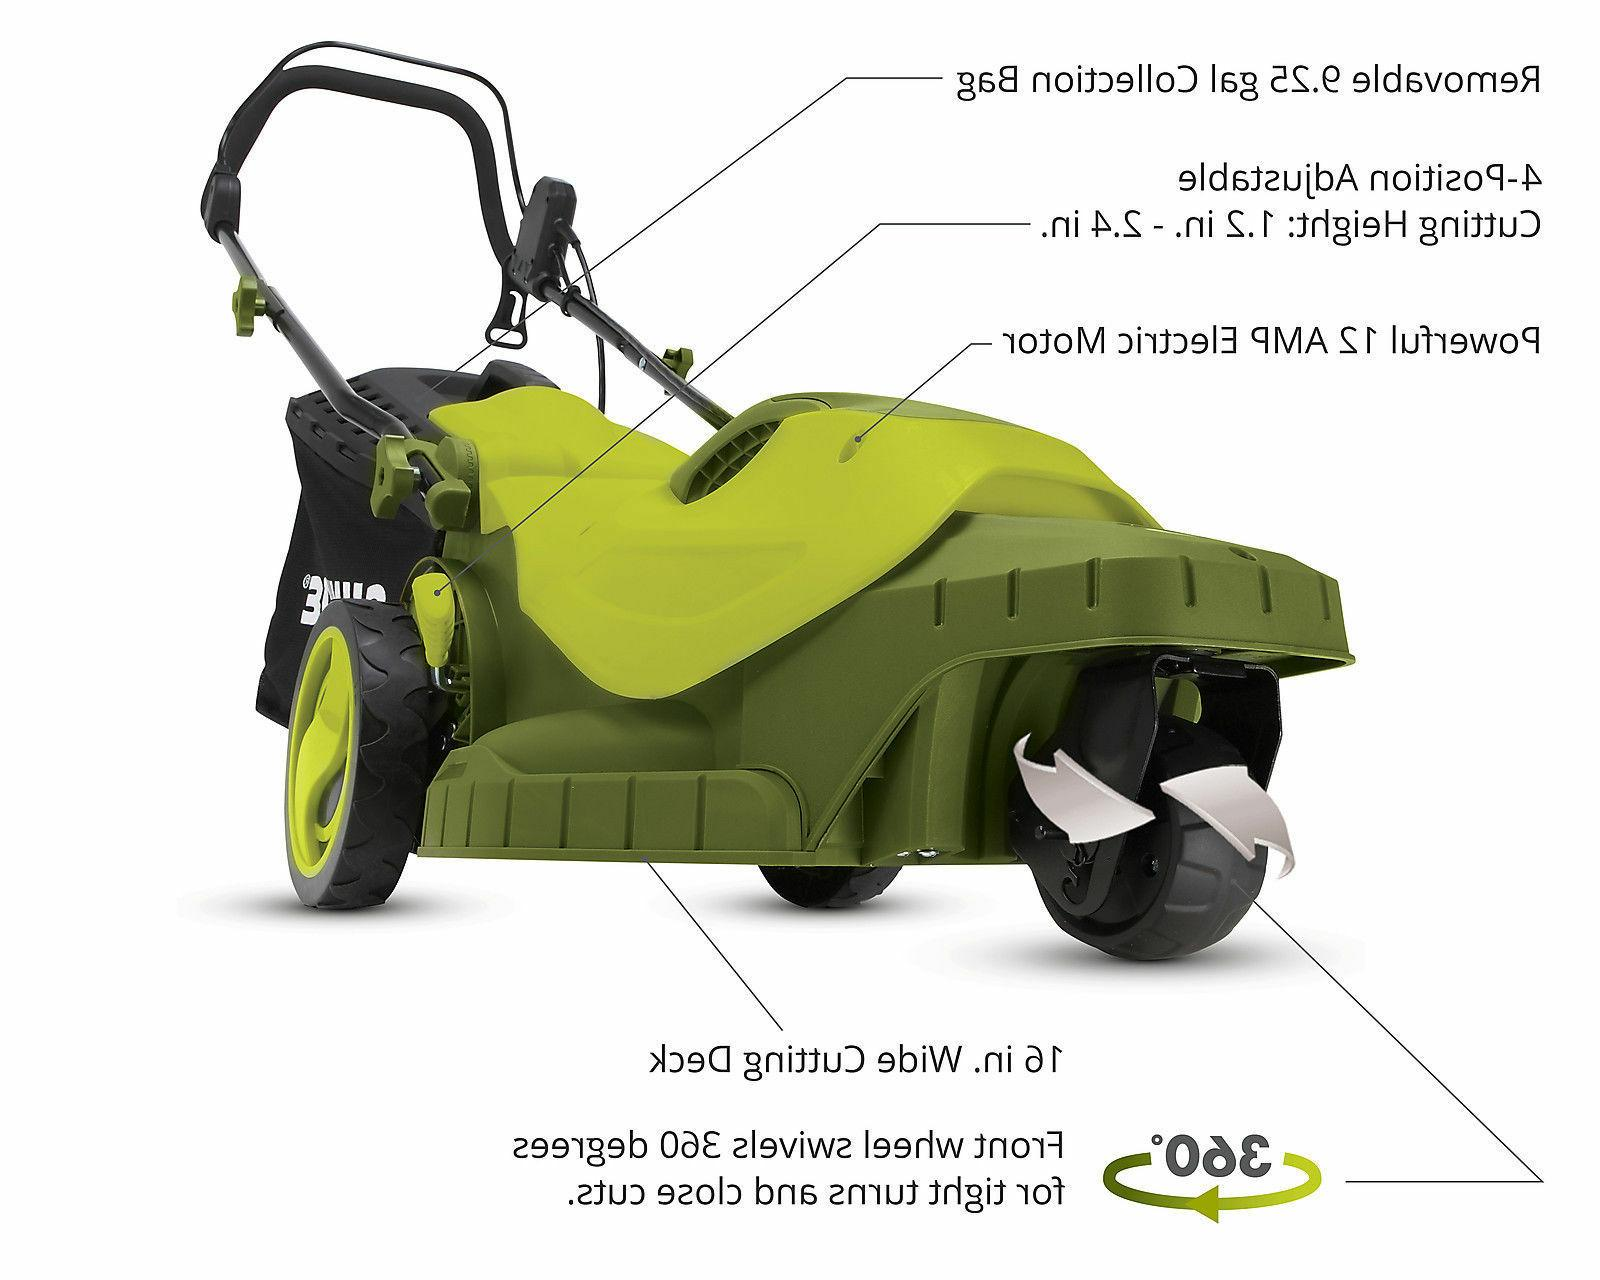 mj404e 360 electric lawn mower 3 wheels16